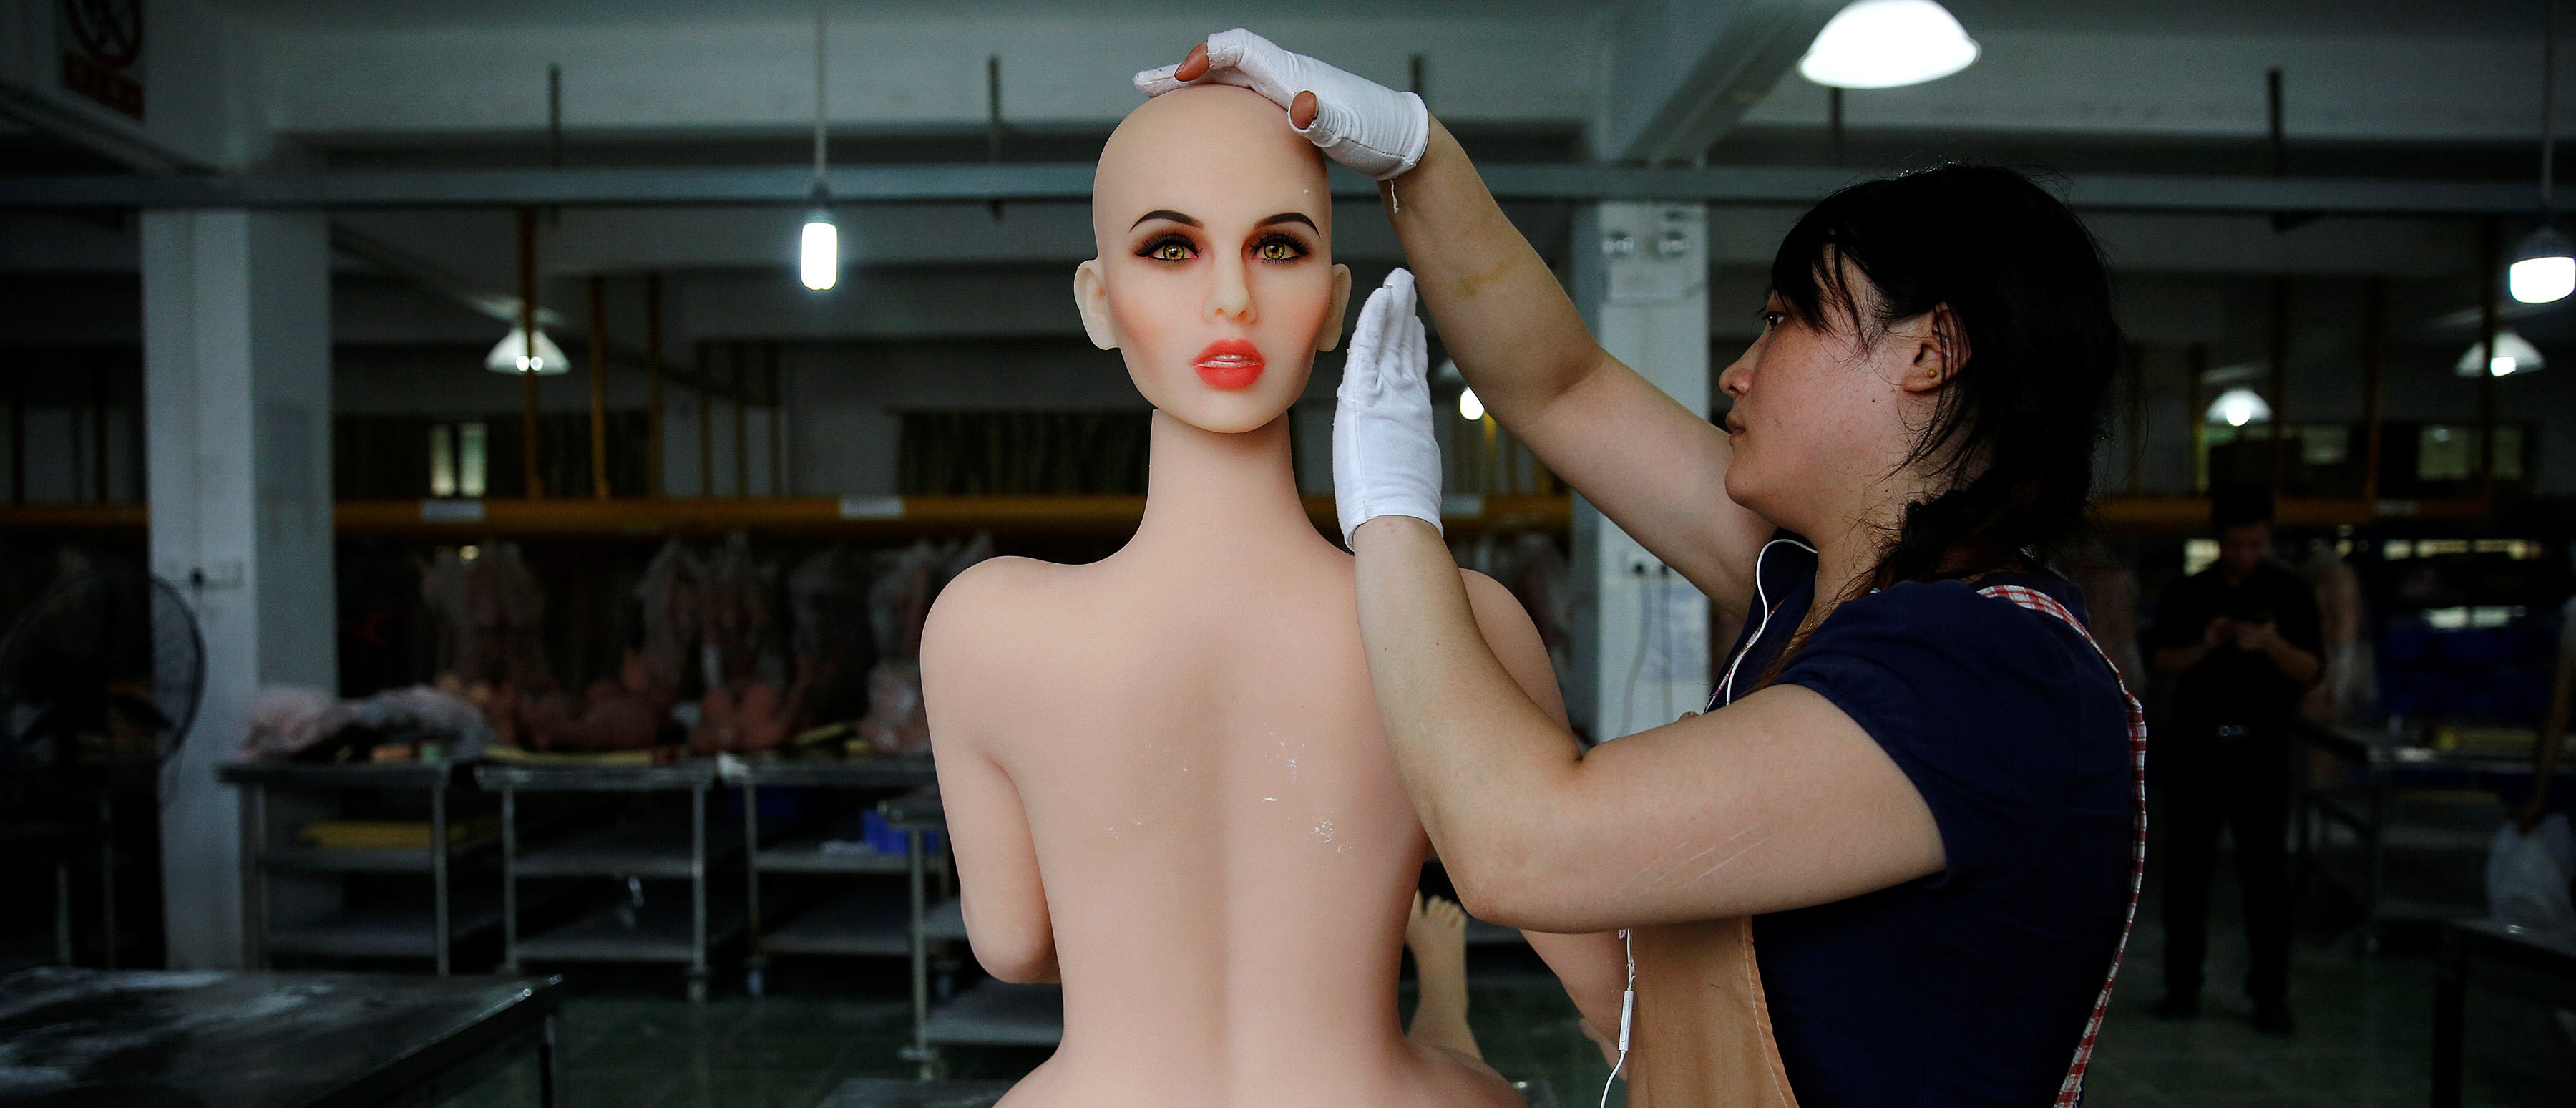 """A worker assembles a sex doll at the WMDOLL factory in Zhongshan, Guangdong Province, China, July 11, 2018. The factory has over 200 full-time workers, all dolls are handmade and each requires the cooperation of at least five workers. REUTERS/Aly Song SEARCH """"SONG DOLLS"""" FOR THIS STORY. SEARCH """"WIDER IMAGE"""" FOR ALL STORIES. TPX IMAGES OF THE DAY. - RC181D2A1690"""